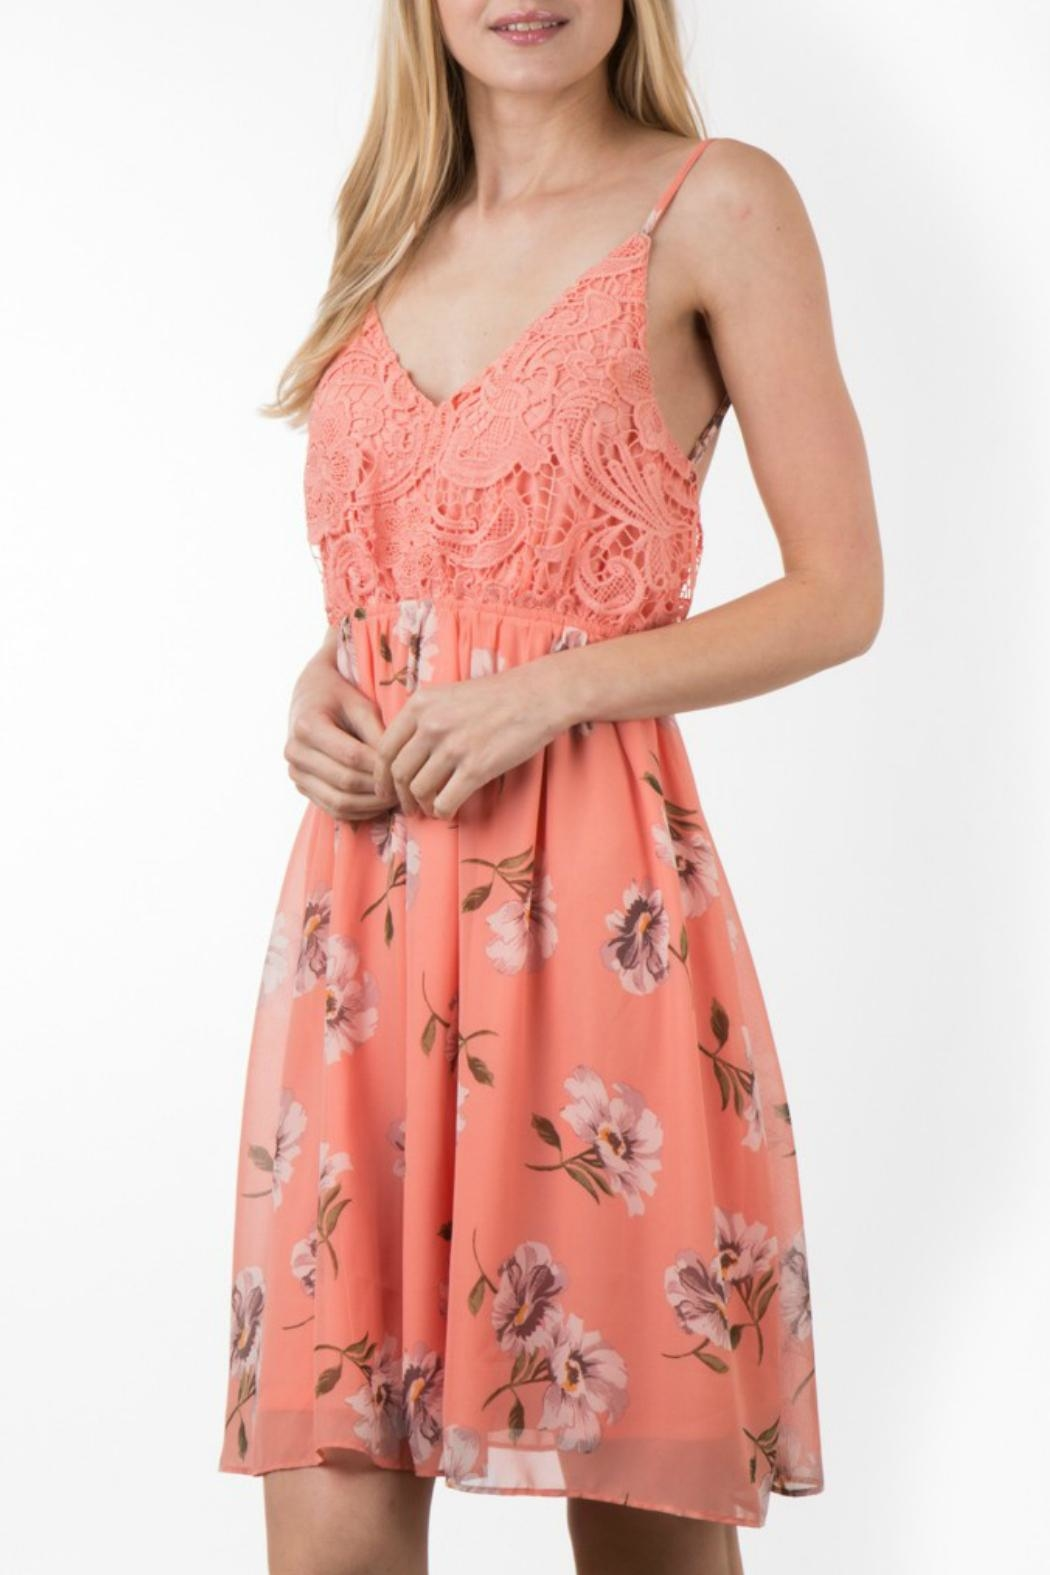 ALB Anchorage Open-Back Floral Dress - Main Image